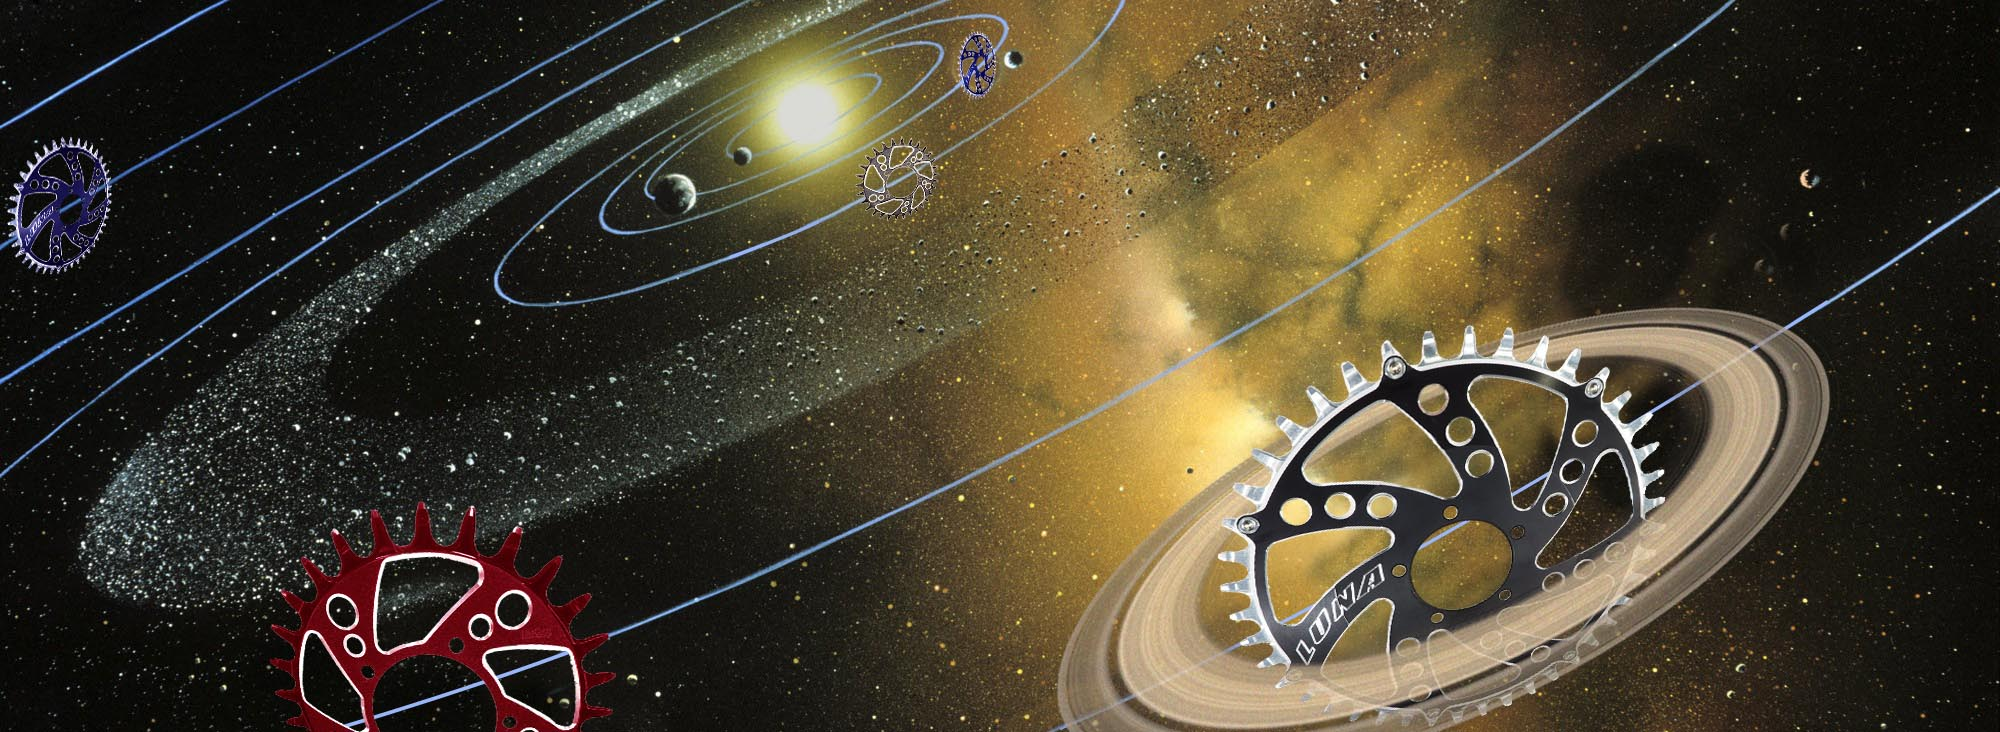 solar-system-chain-rings-banner-without-text.jpg